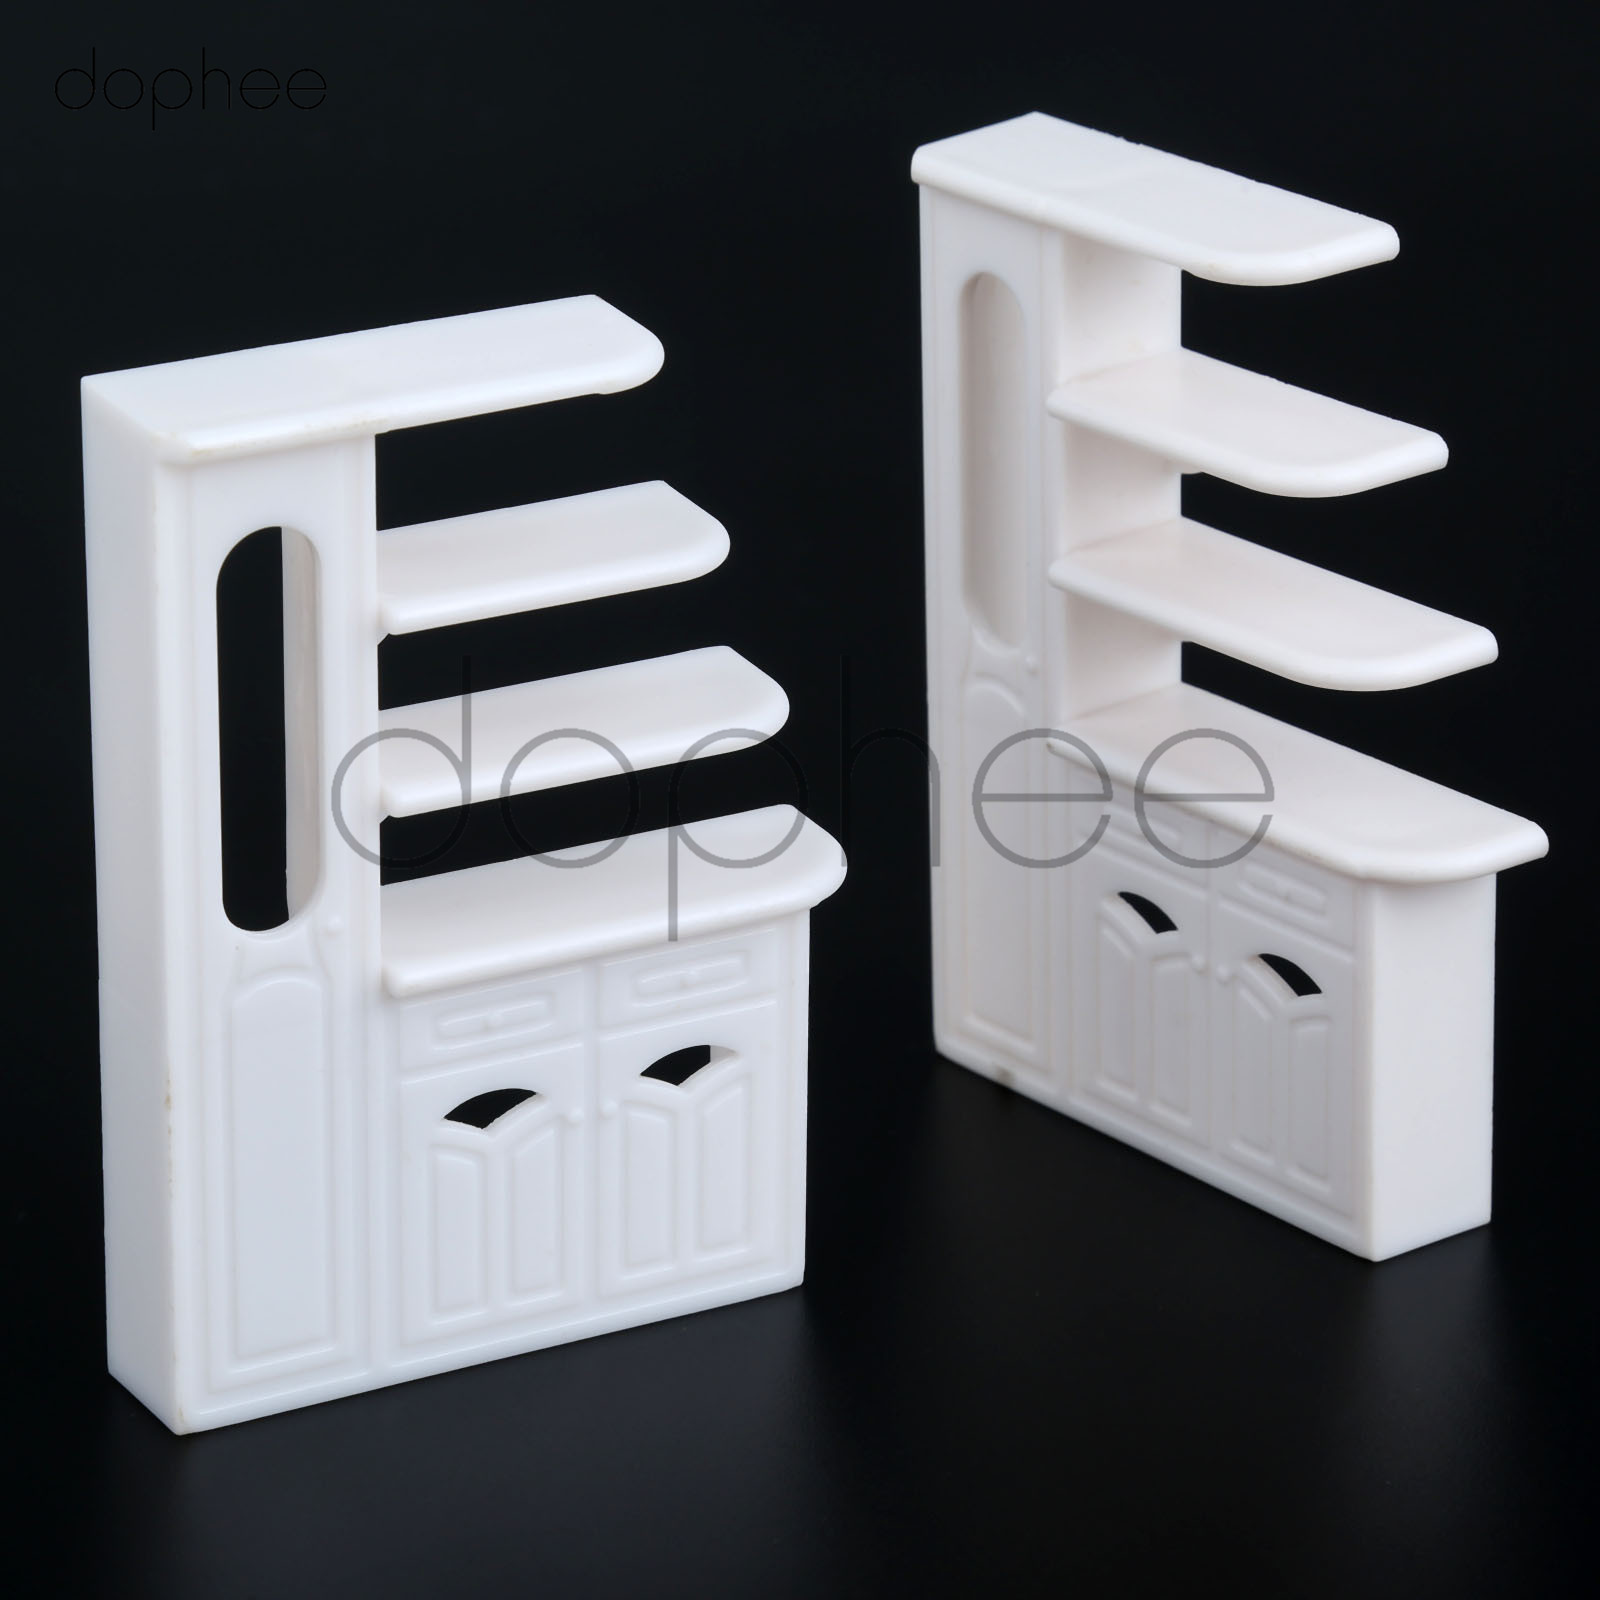 Permalink to dophee 5pcs 1:20 Miniature Kitchen Cabinet Model Kitchen Dining Cabinet Display Shelf White Doll House Decoration Accessories